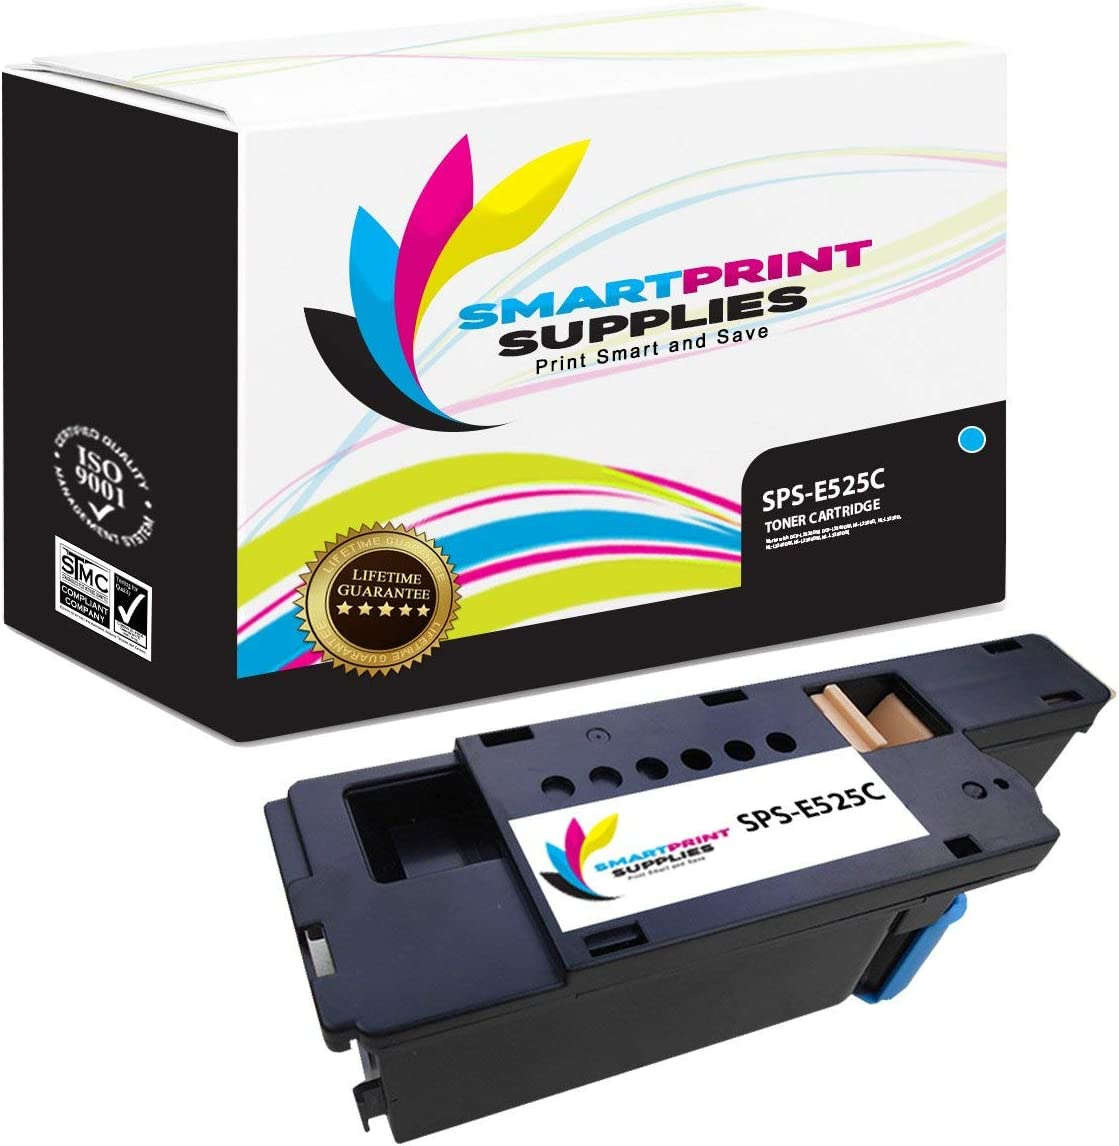 Smart Print Supplies Compatible Toner Cartridge Replacement for Dell E525W Printers (Black, Cyan, Magenta, Yellow) - 5 Pack